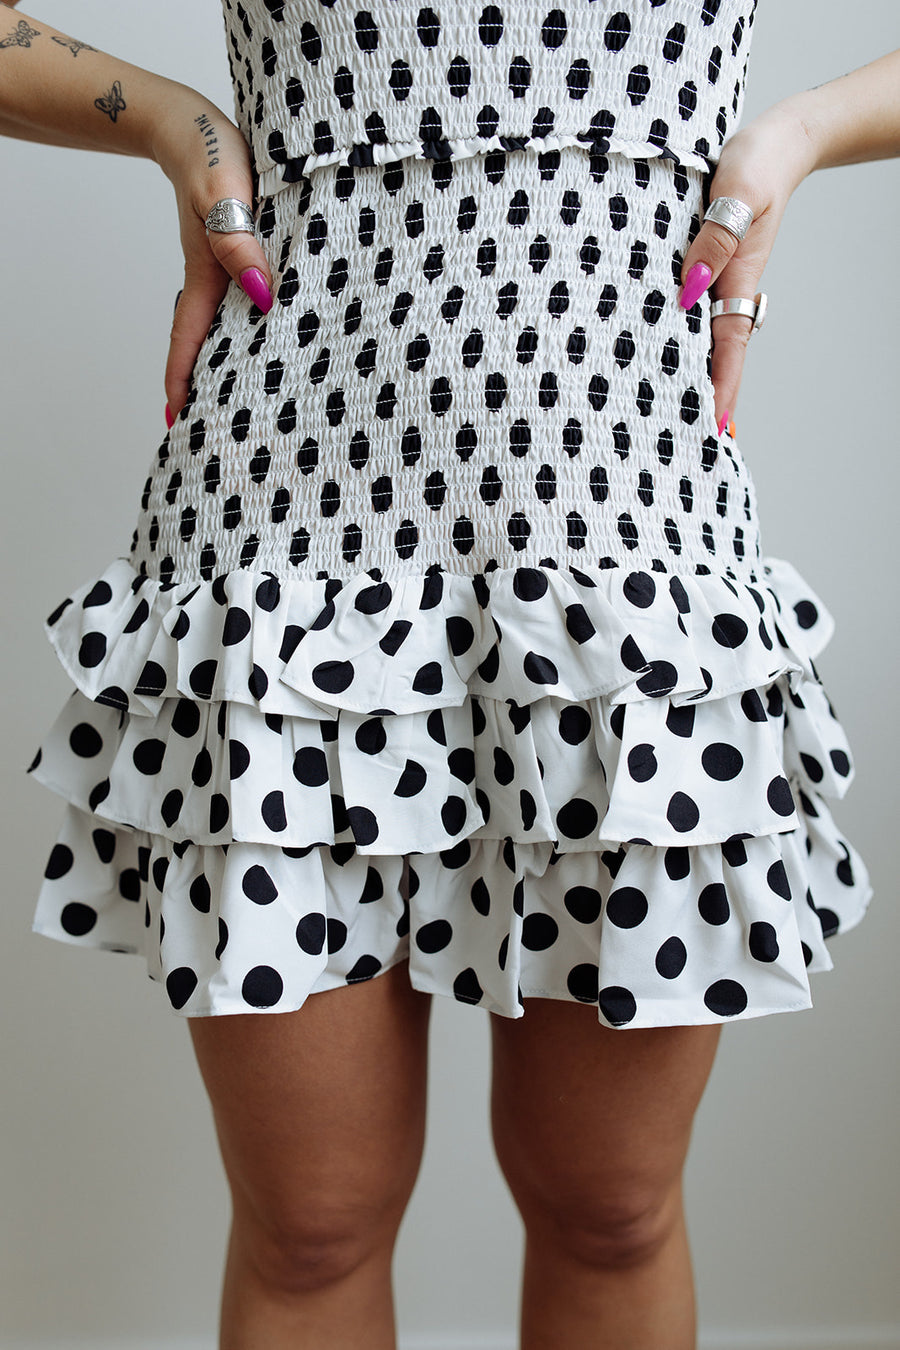 PRETTY IN POLKA DOTS DRESS